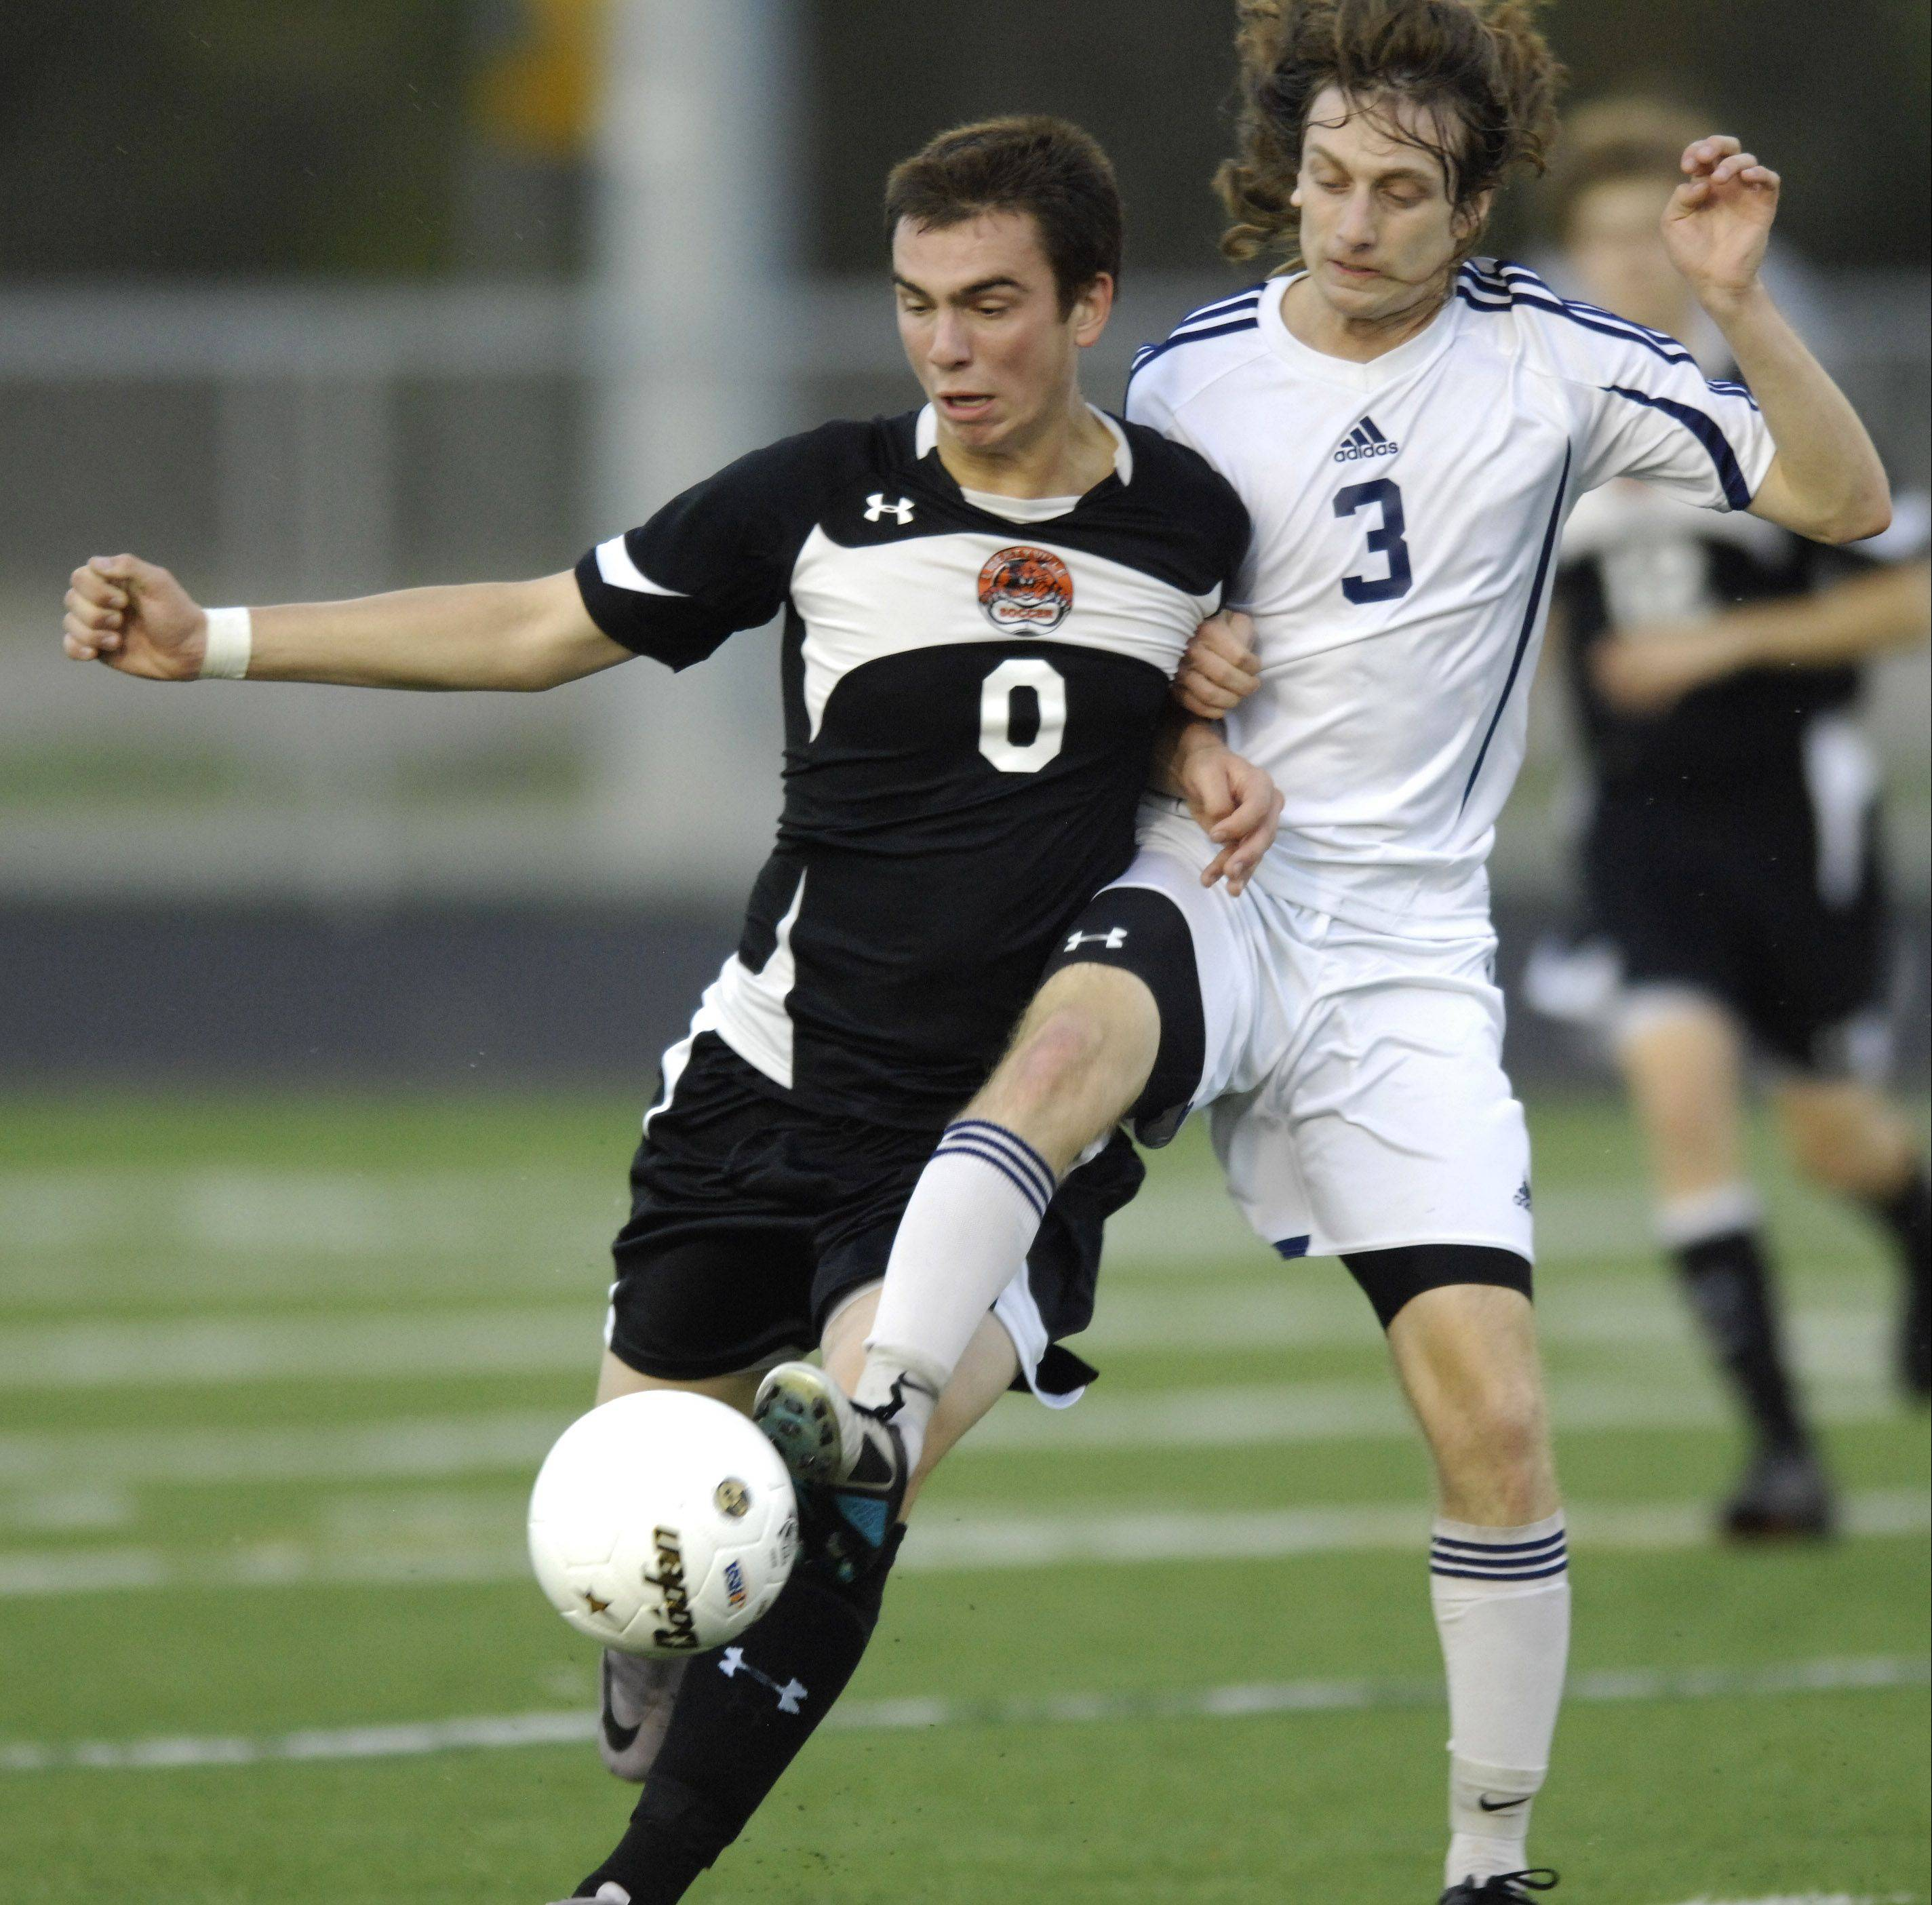 Libertyville�s Austin Bitta, left, and Prospect�s Avi Chitman make contact as they pursue the ball during Tuesday�s sectional semifinal at Conant.